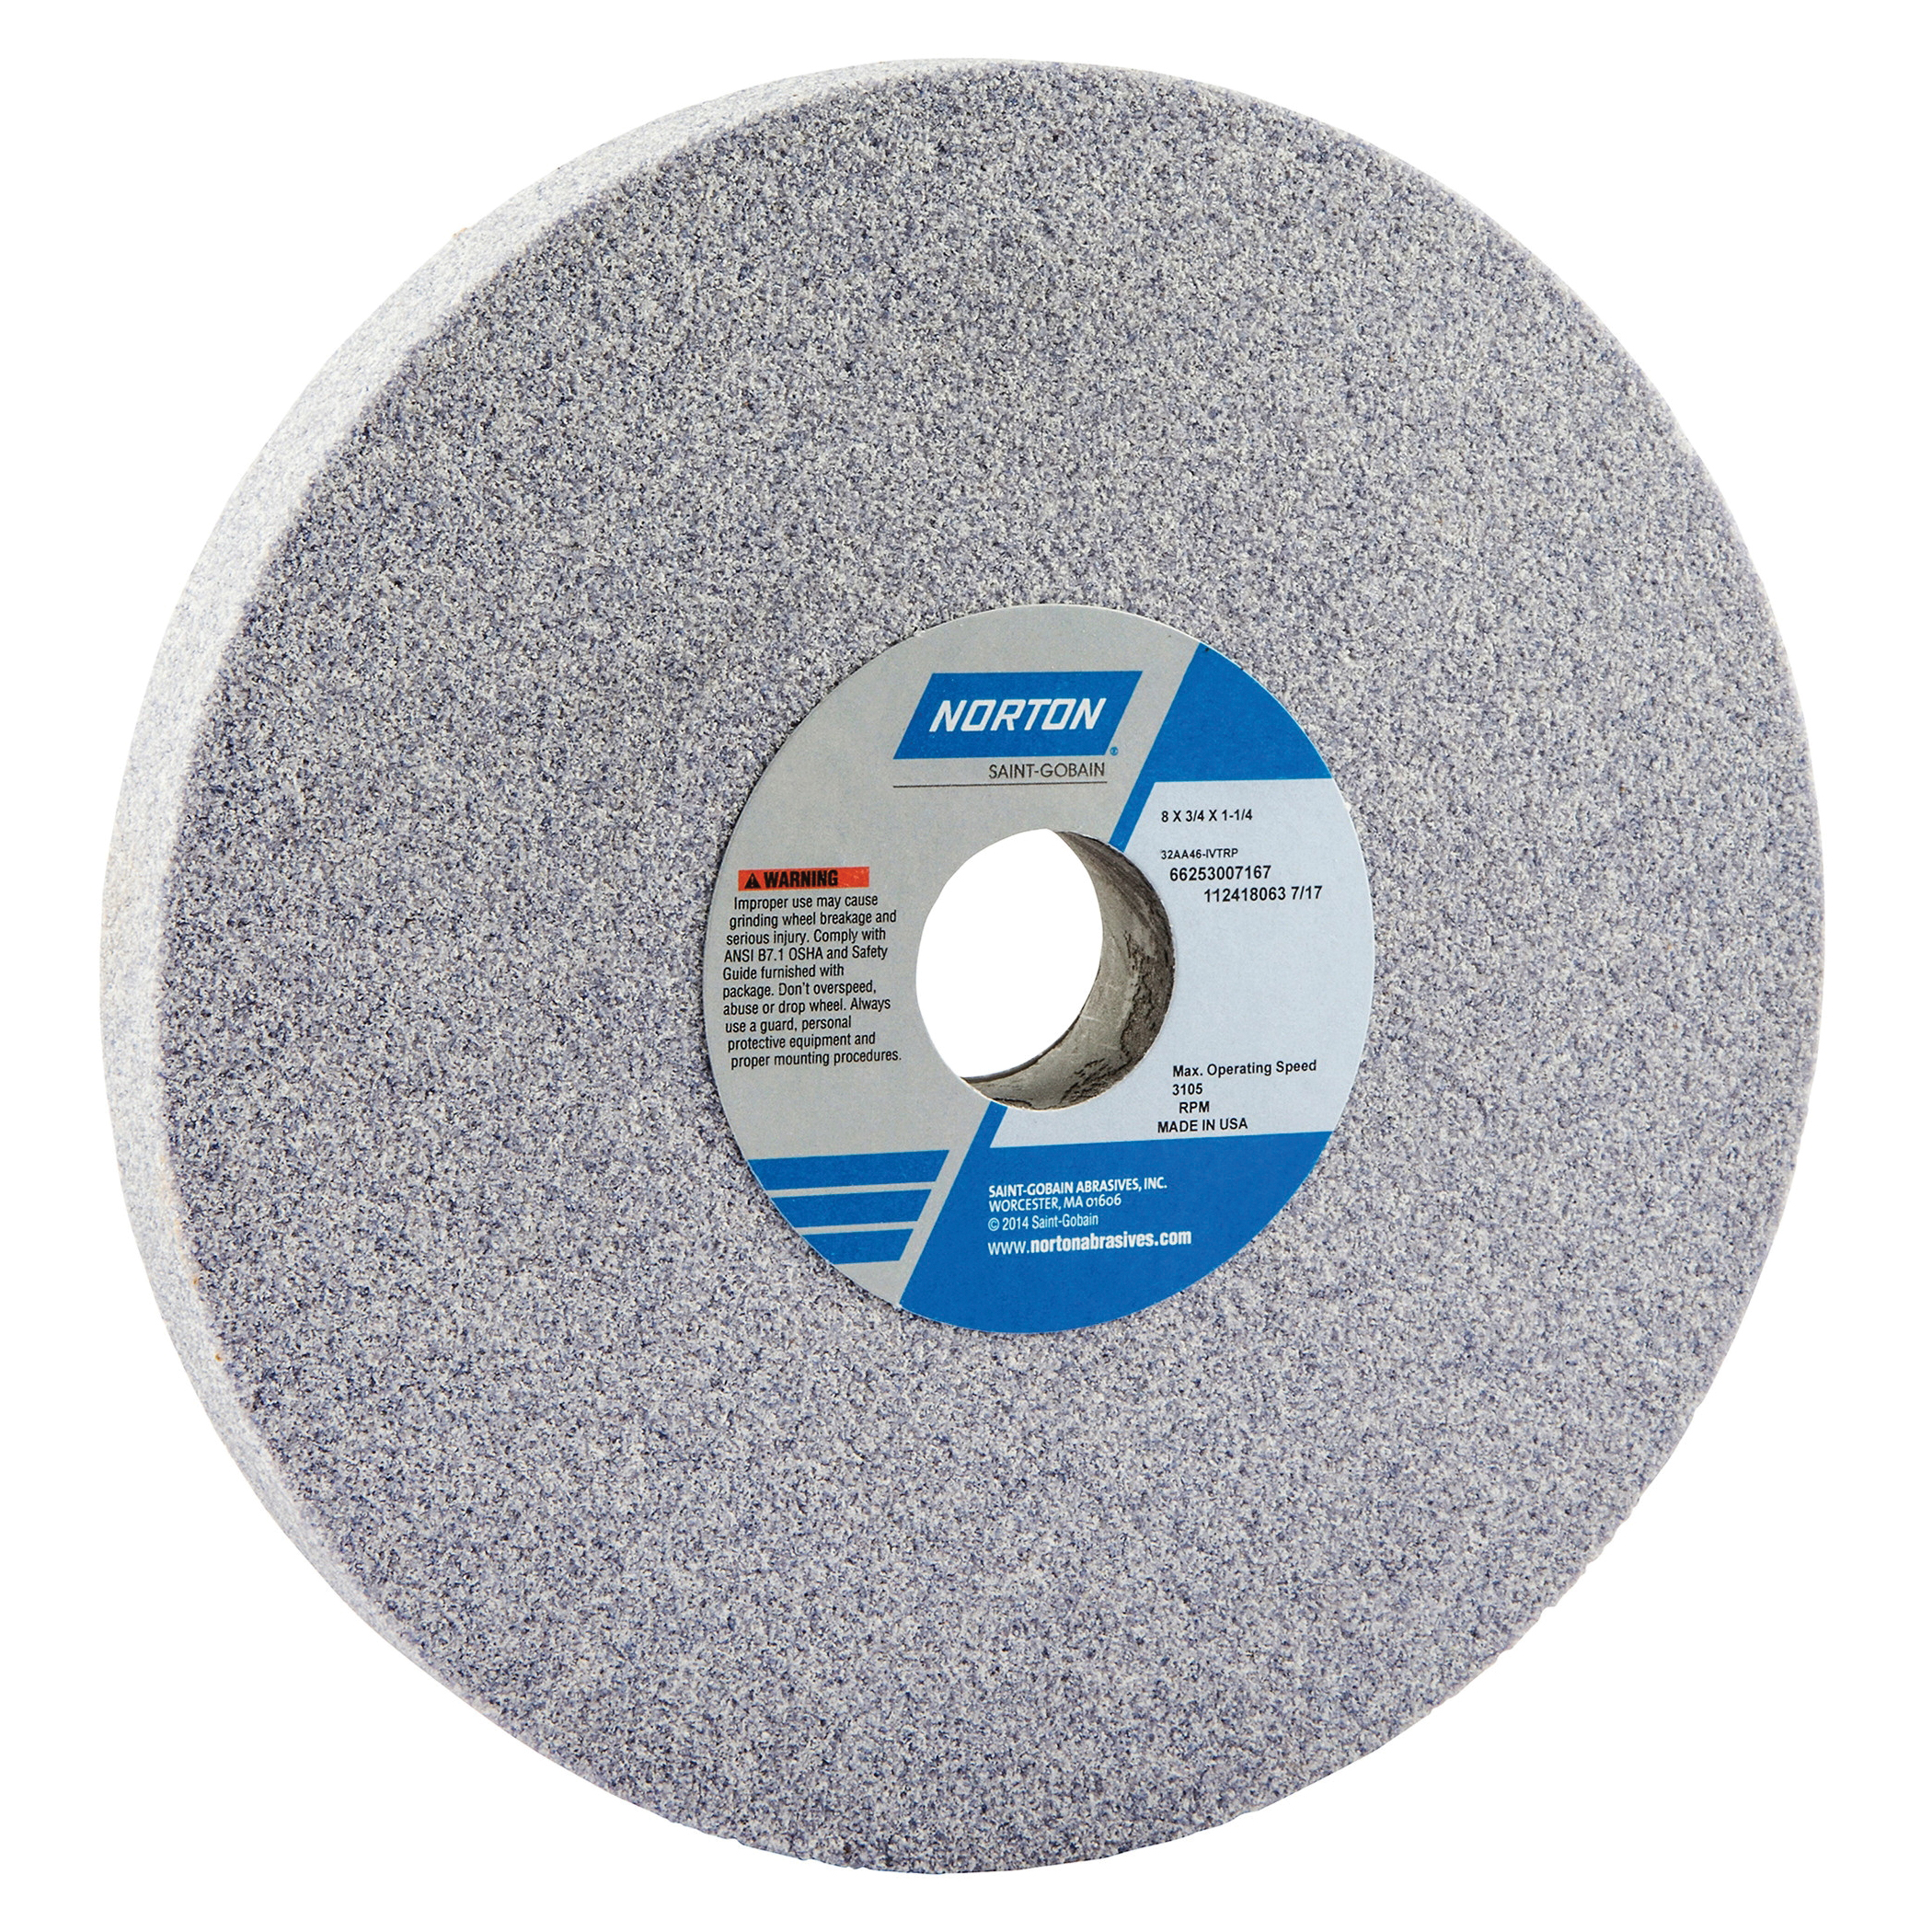 Norton® 66253007167 32AA Straight Toolroom Wheel, 8 in Dia x 3/4 in THK, 1-1/4 in Center Hole, 46 Grit, Aluminum Oxide Abrasive